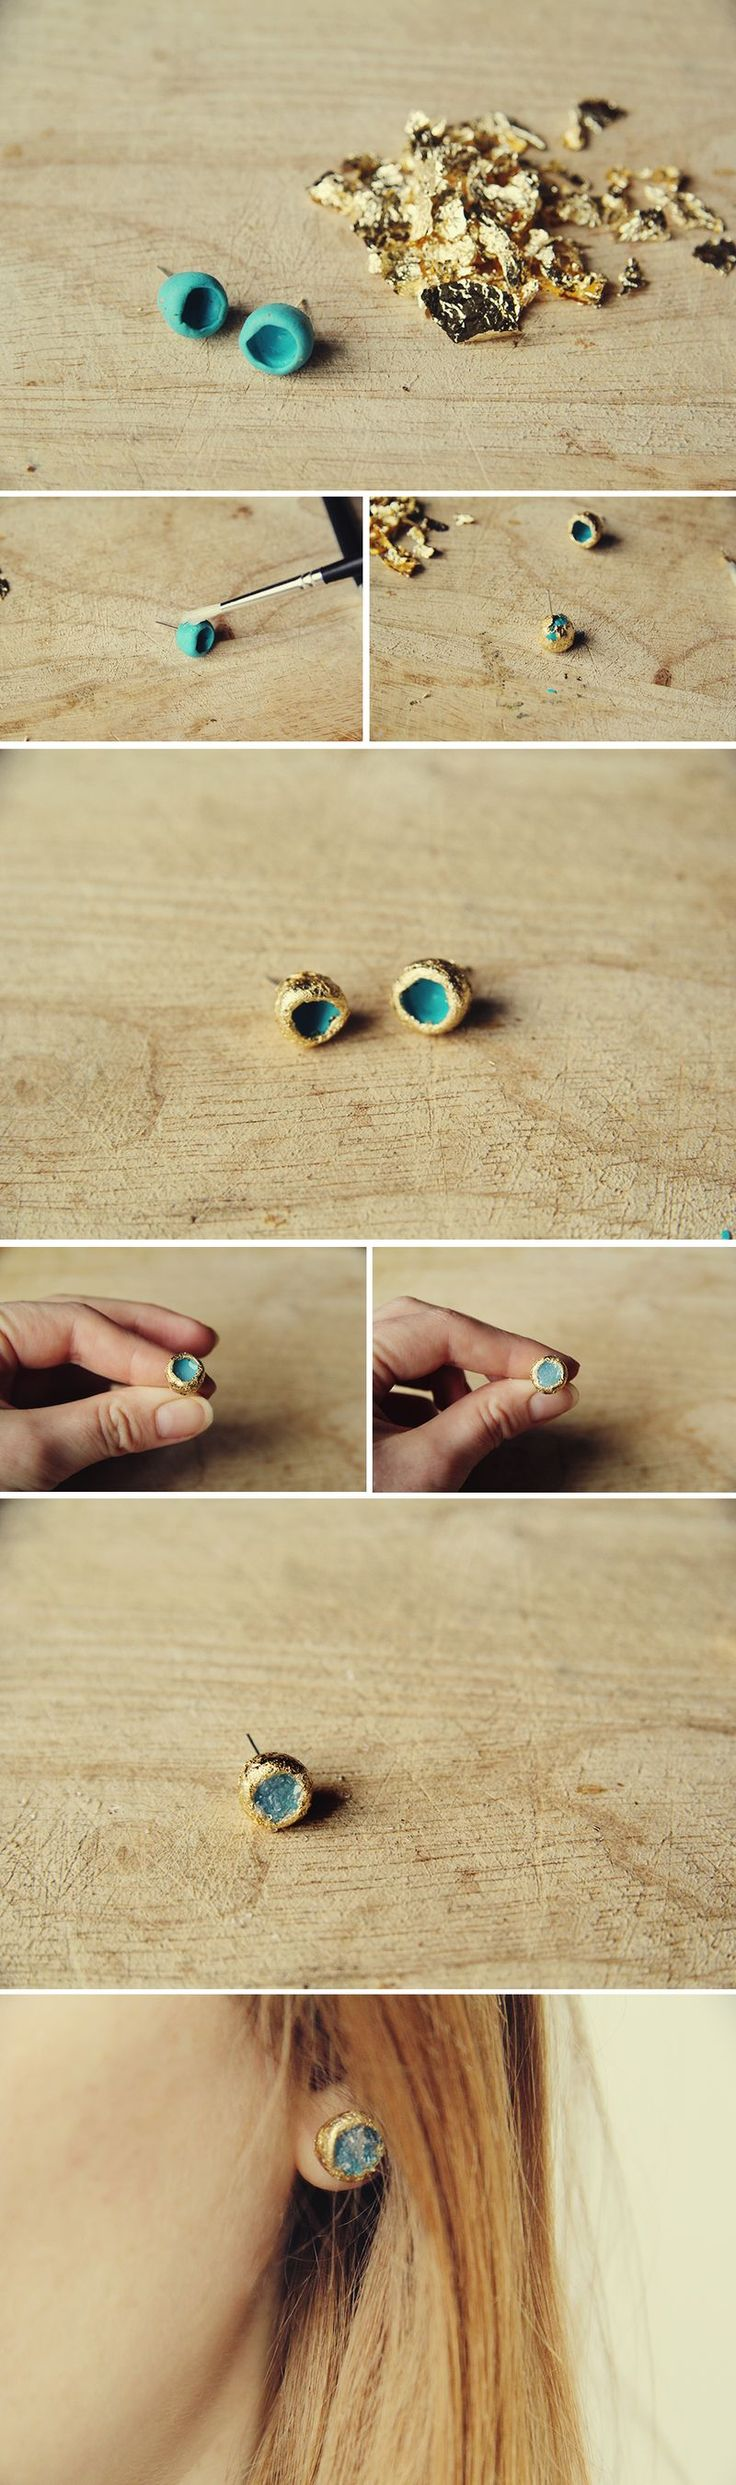 Make these faux raw Gold and Glass earrings from polymer clay